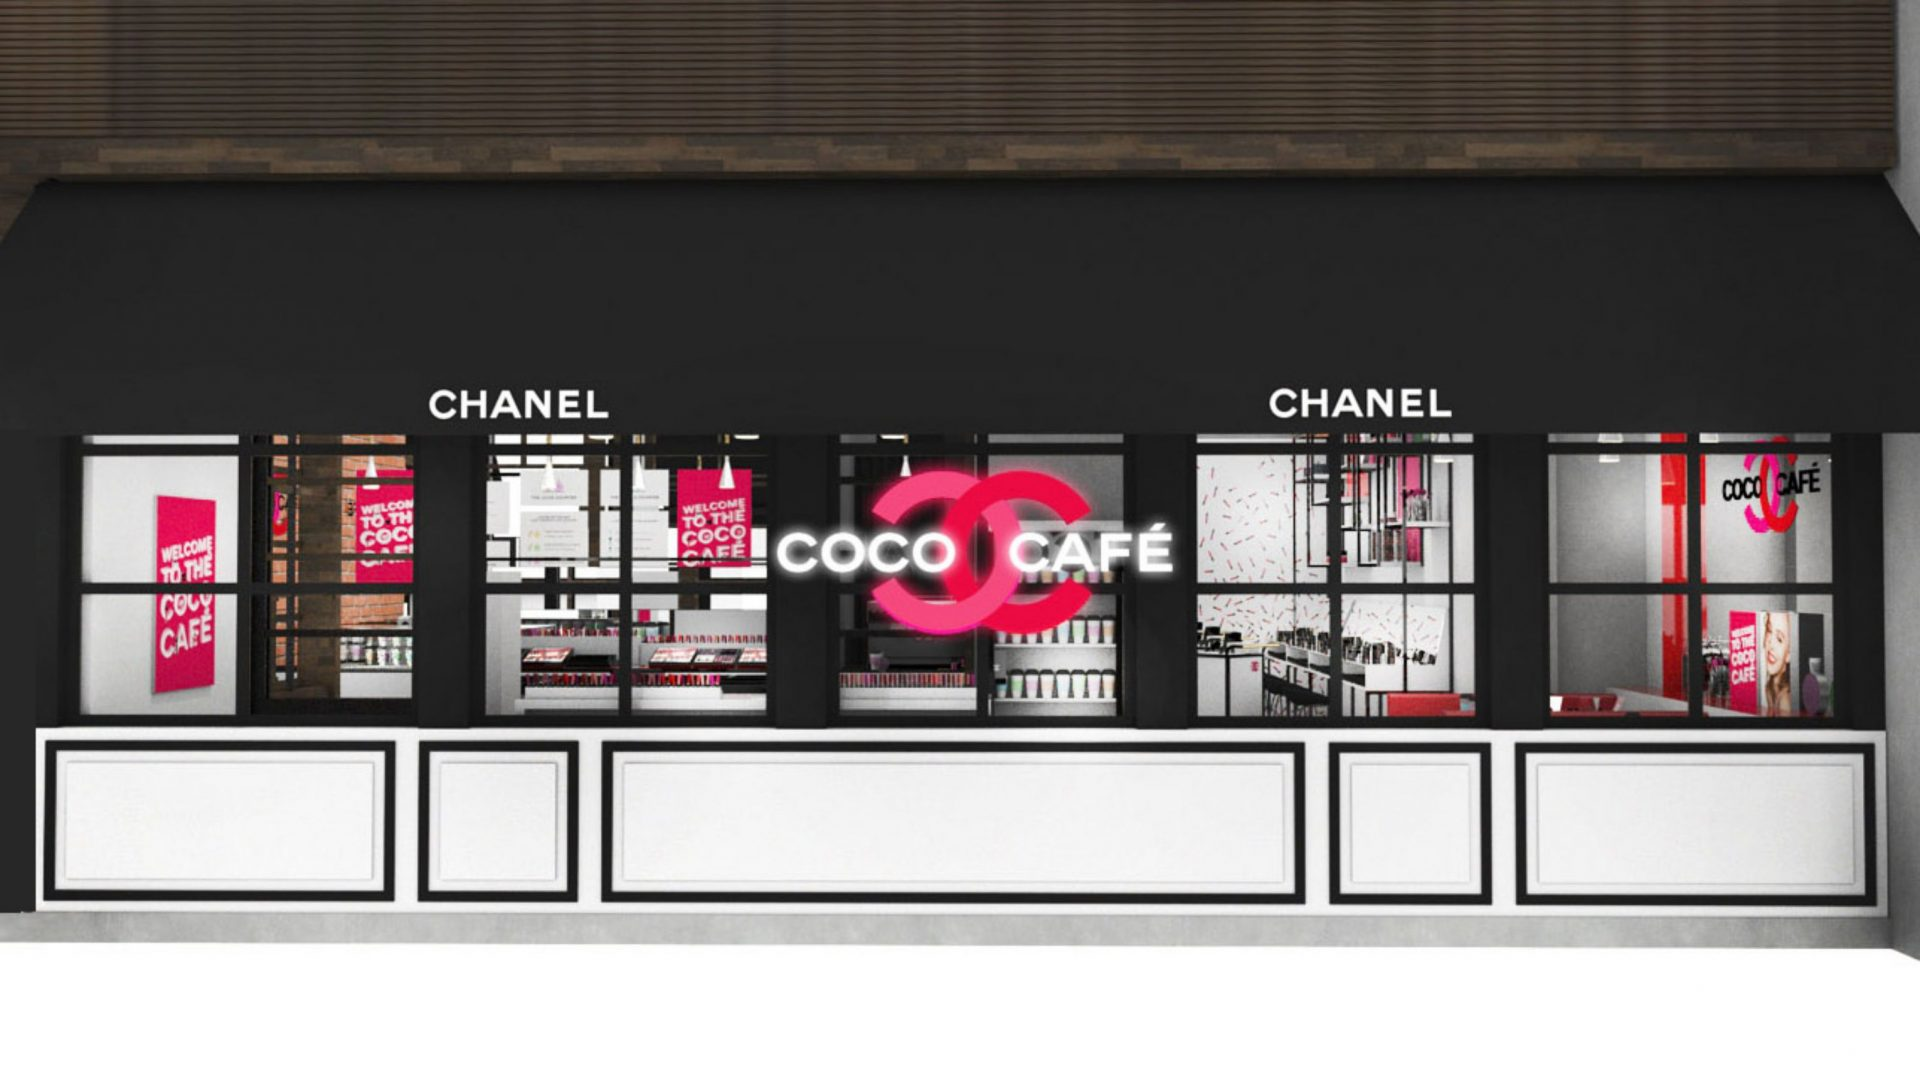 718f497c2989 Chanel fans should sign up now for the Coco Café pop-up this June